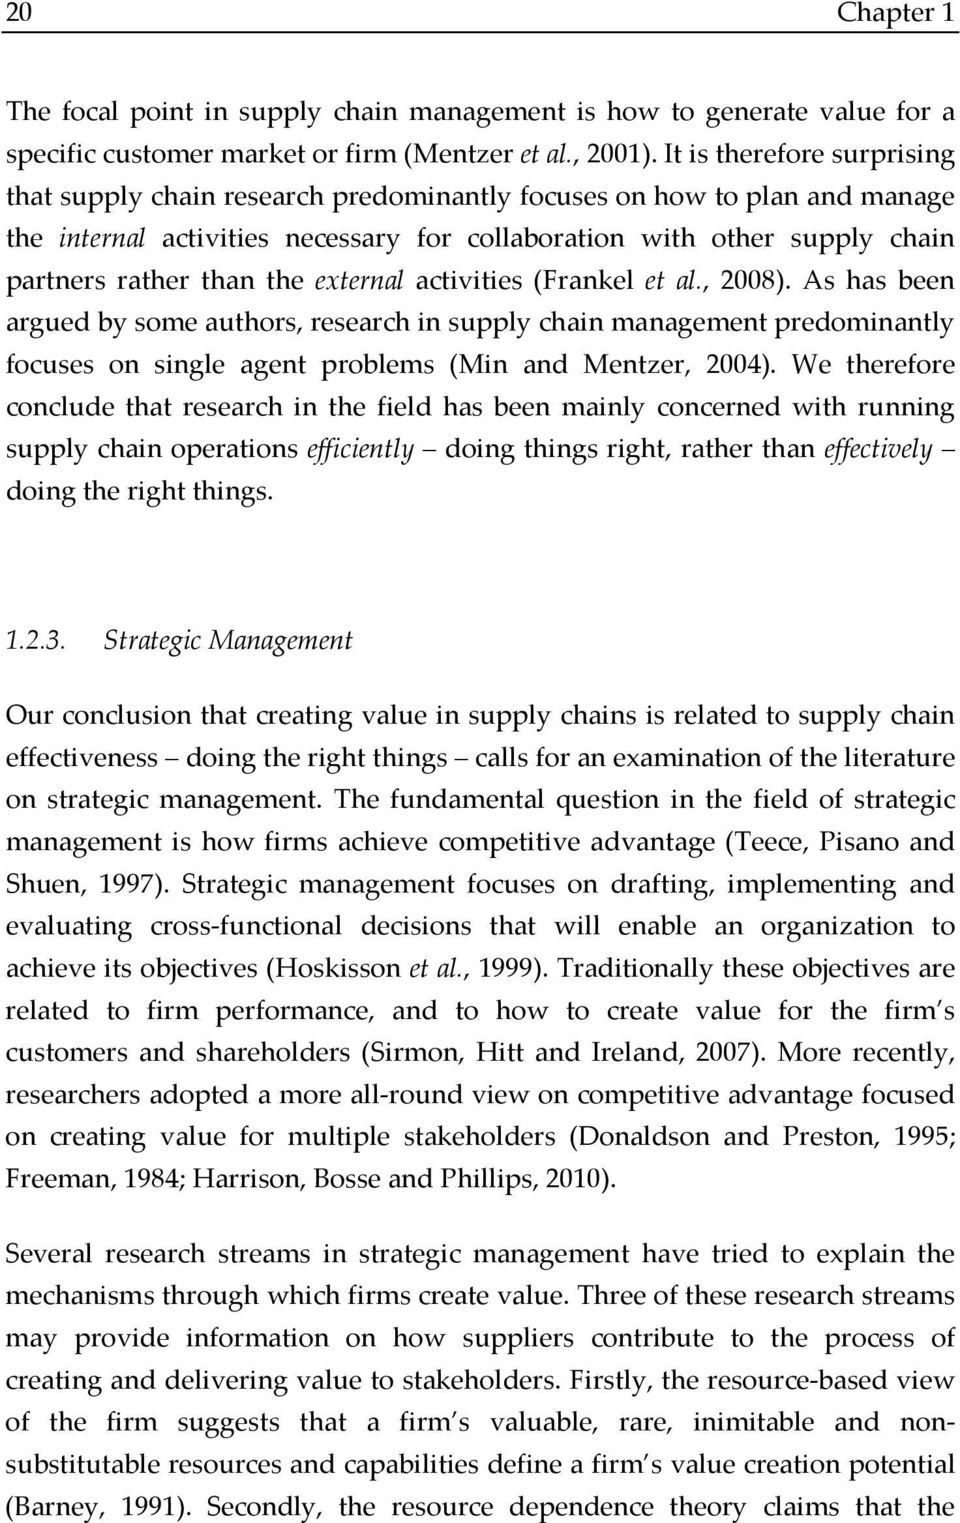 the external activities (Frankel et al., 2008). As has been argued by some authors, research in supply chain management predominantly focuses on single agent problems (Min and Mentzer, 2004).